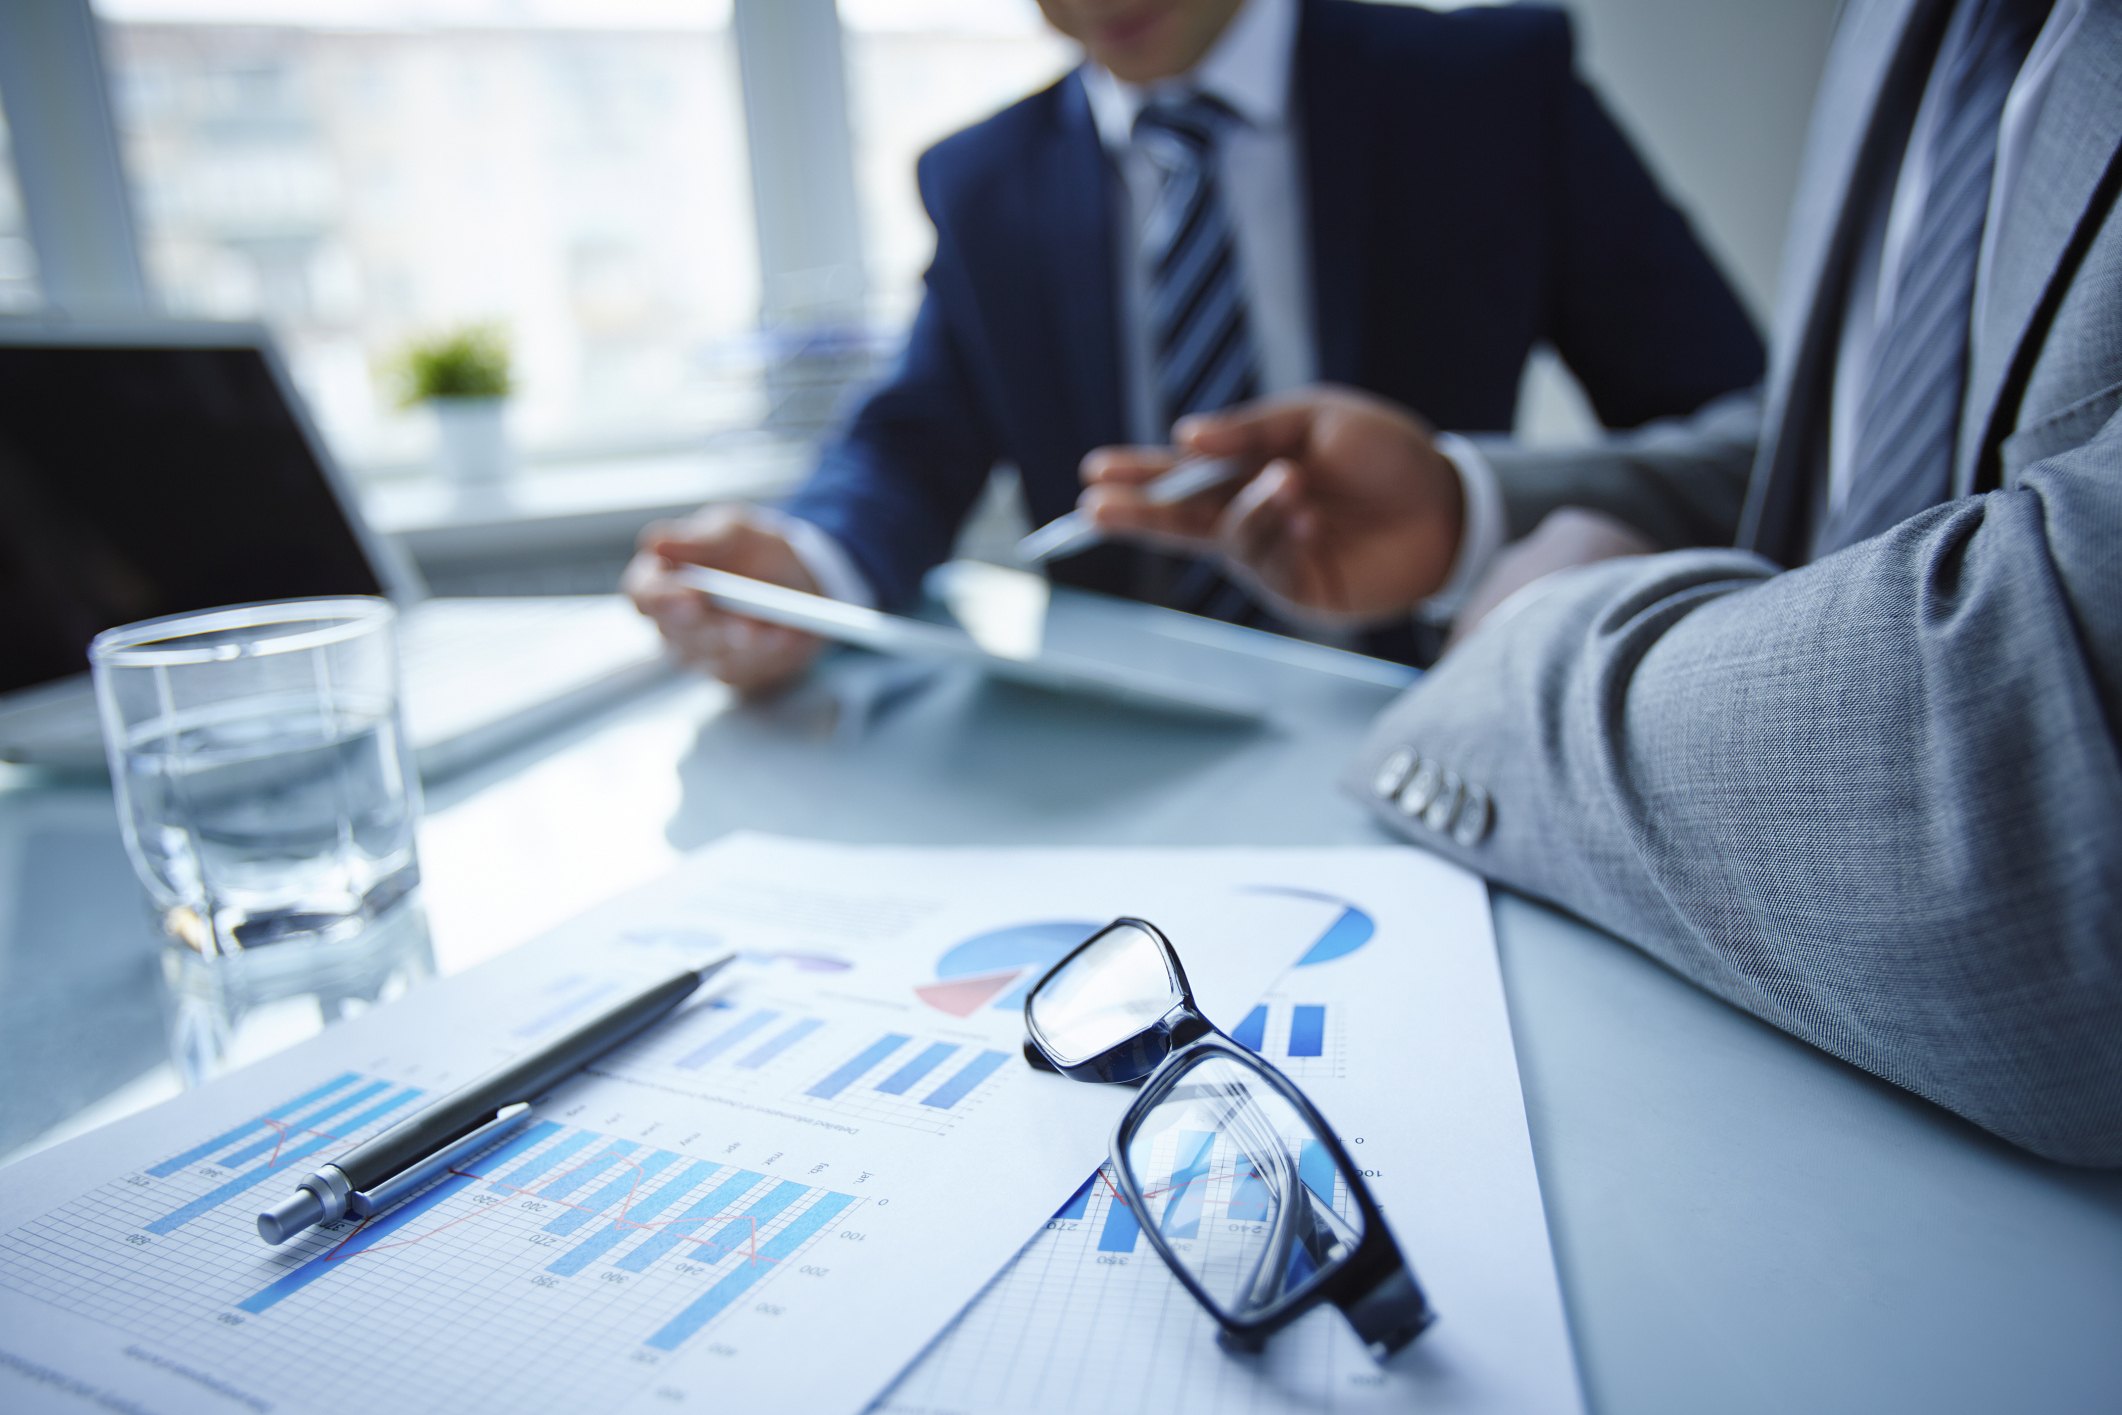 Multiplatform Market Research Report 2021 Top Manufacturers: Inc.  Apple, InMobi, and Yahoo!  a company